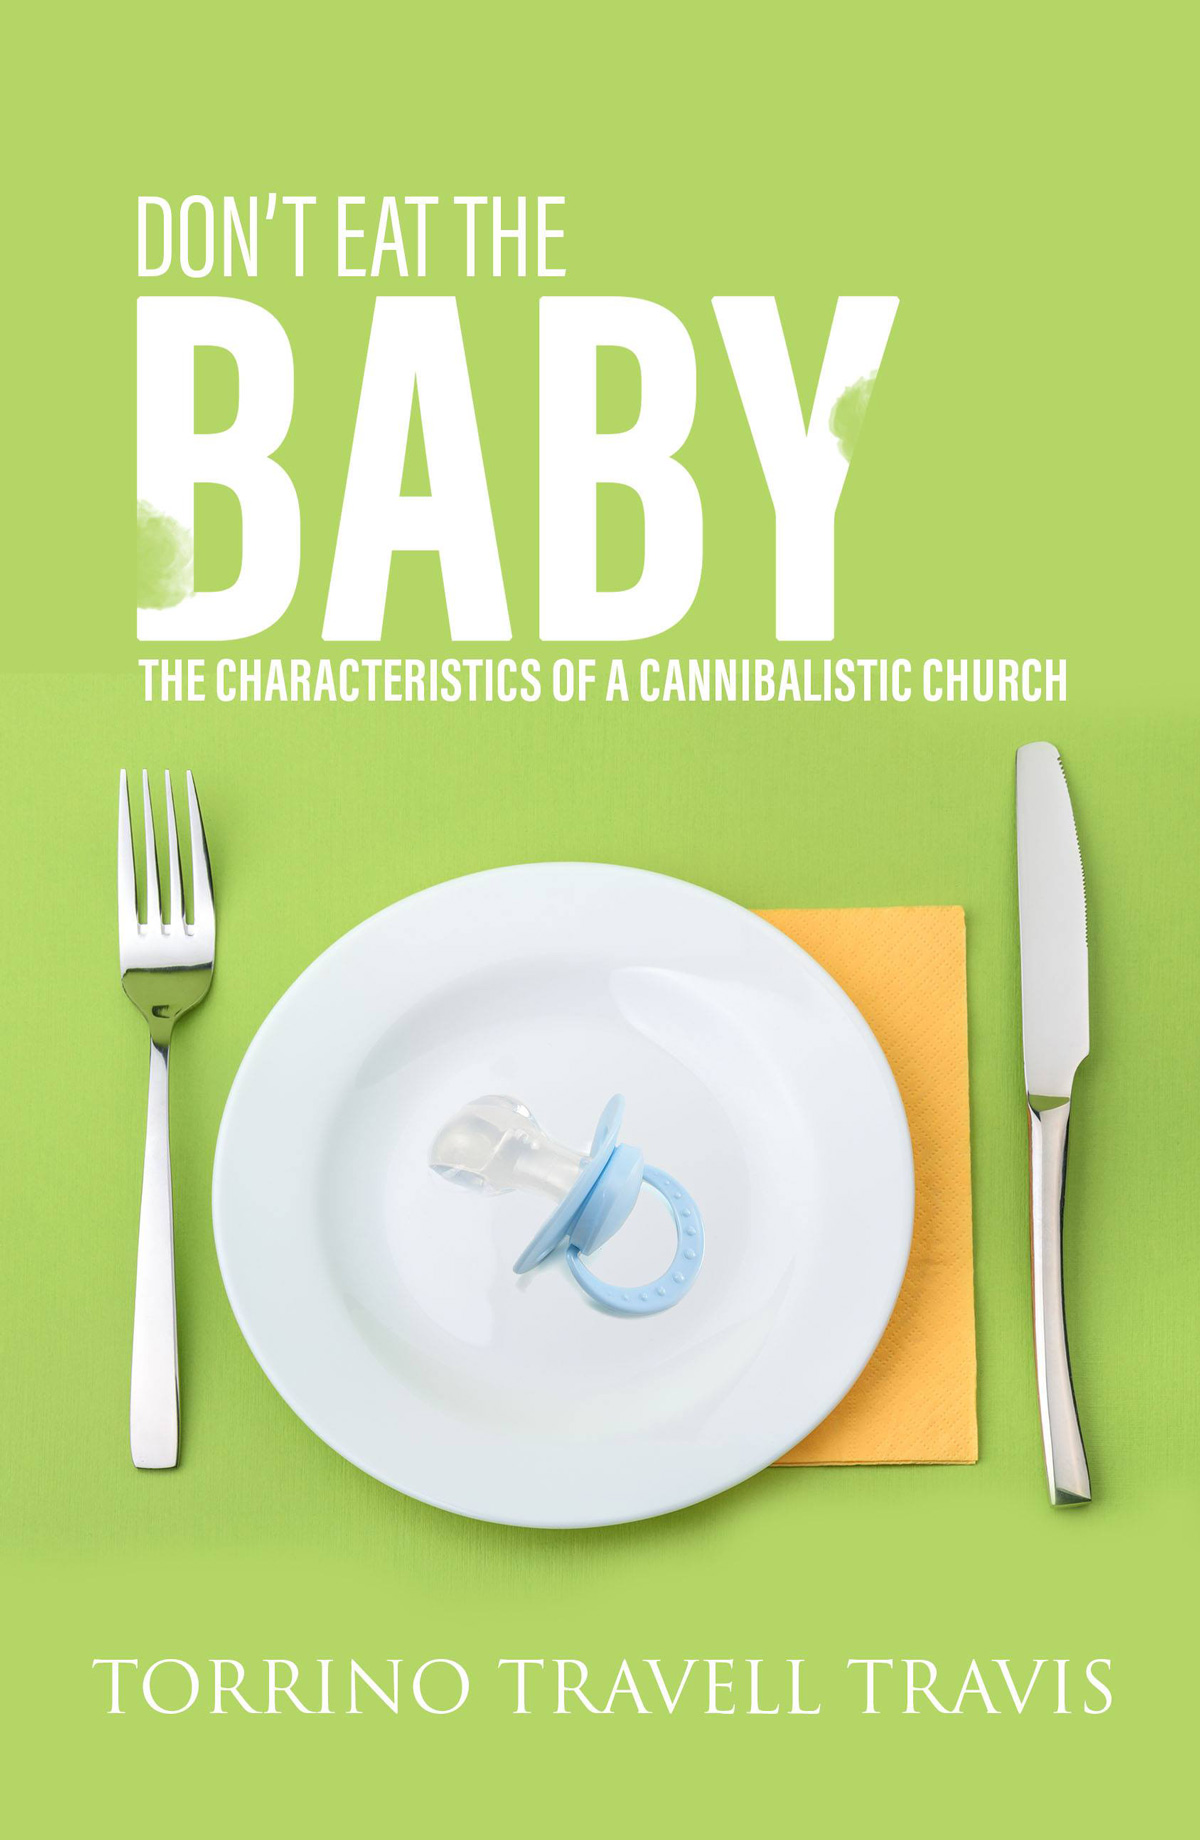 Don't Eat The Baby by Torrino Travell Travis